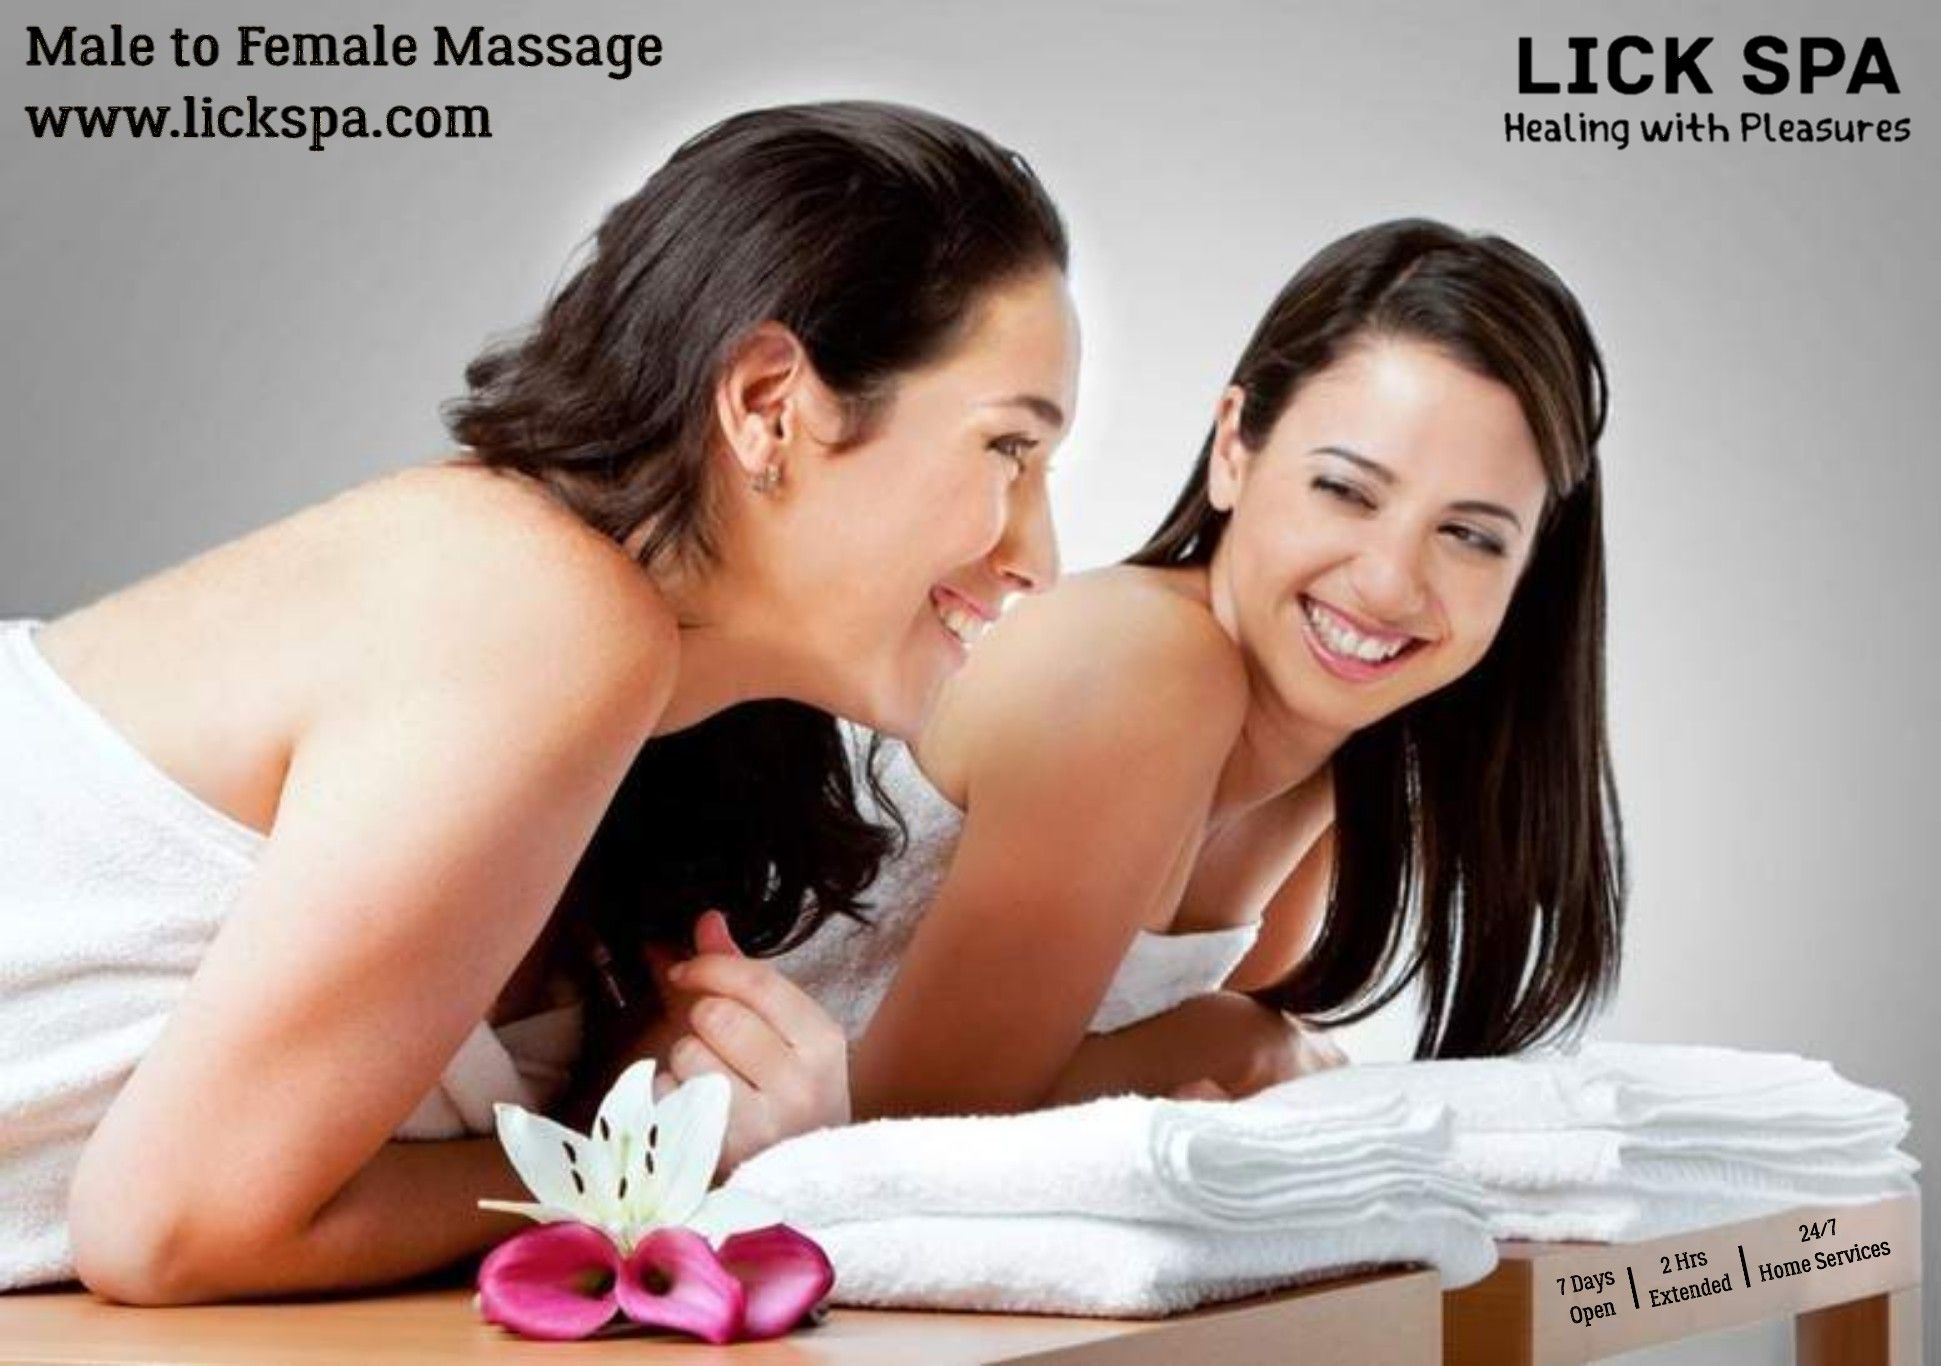 Lick Spa Offer 3hrs Lesbian Couple Massage In Mumbai Best Couple